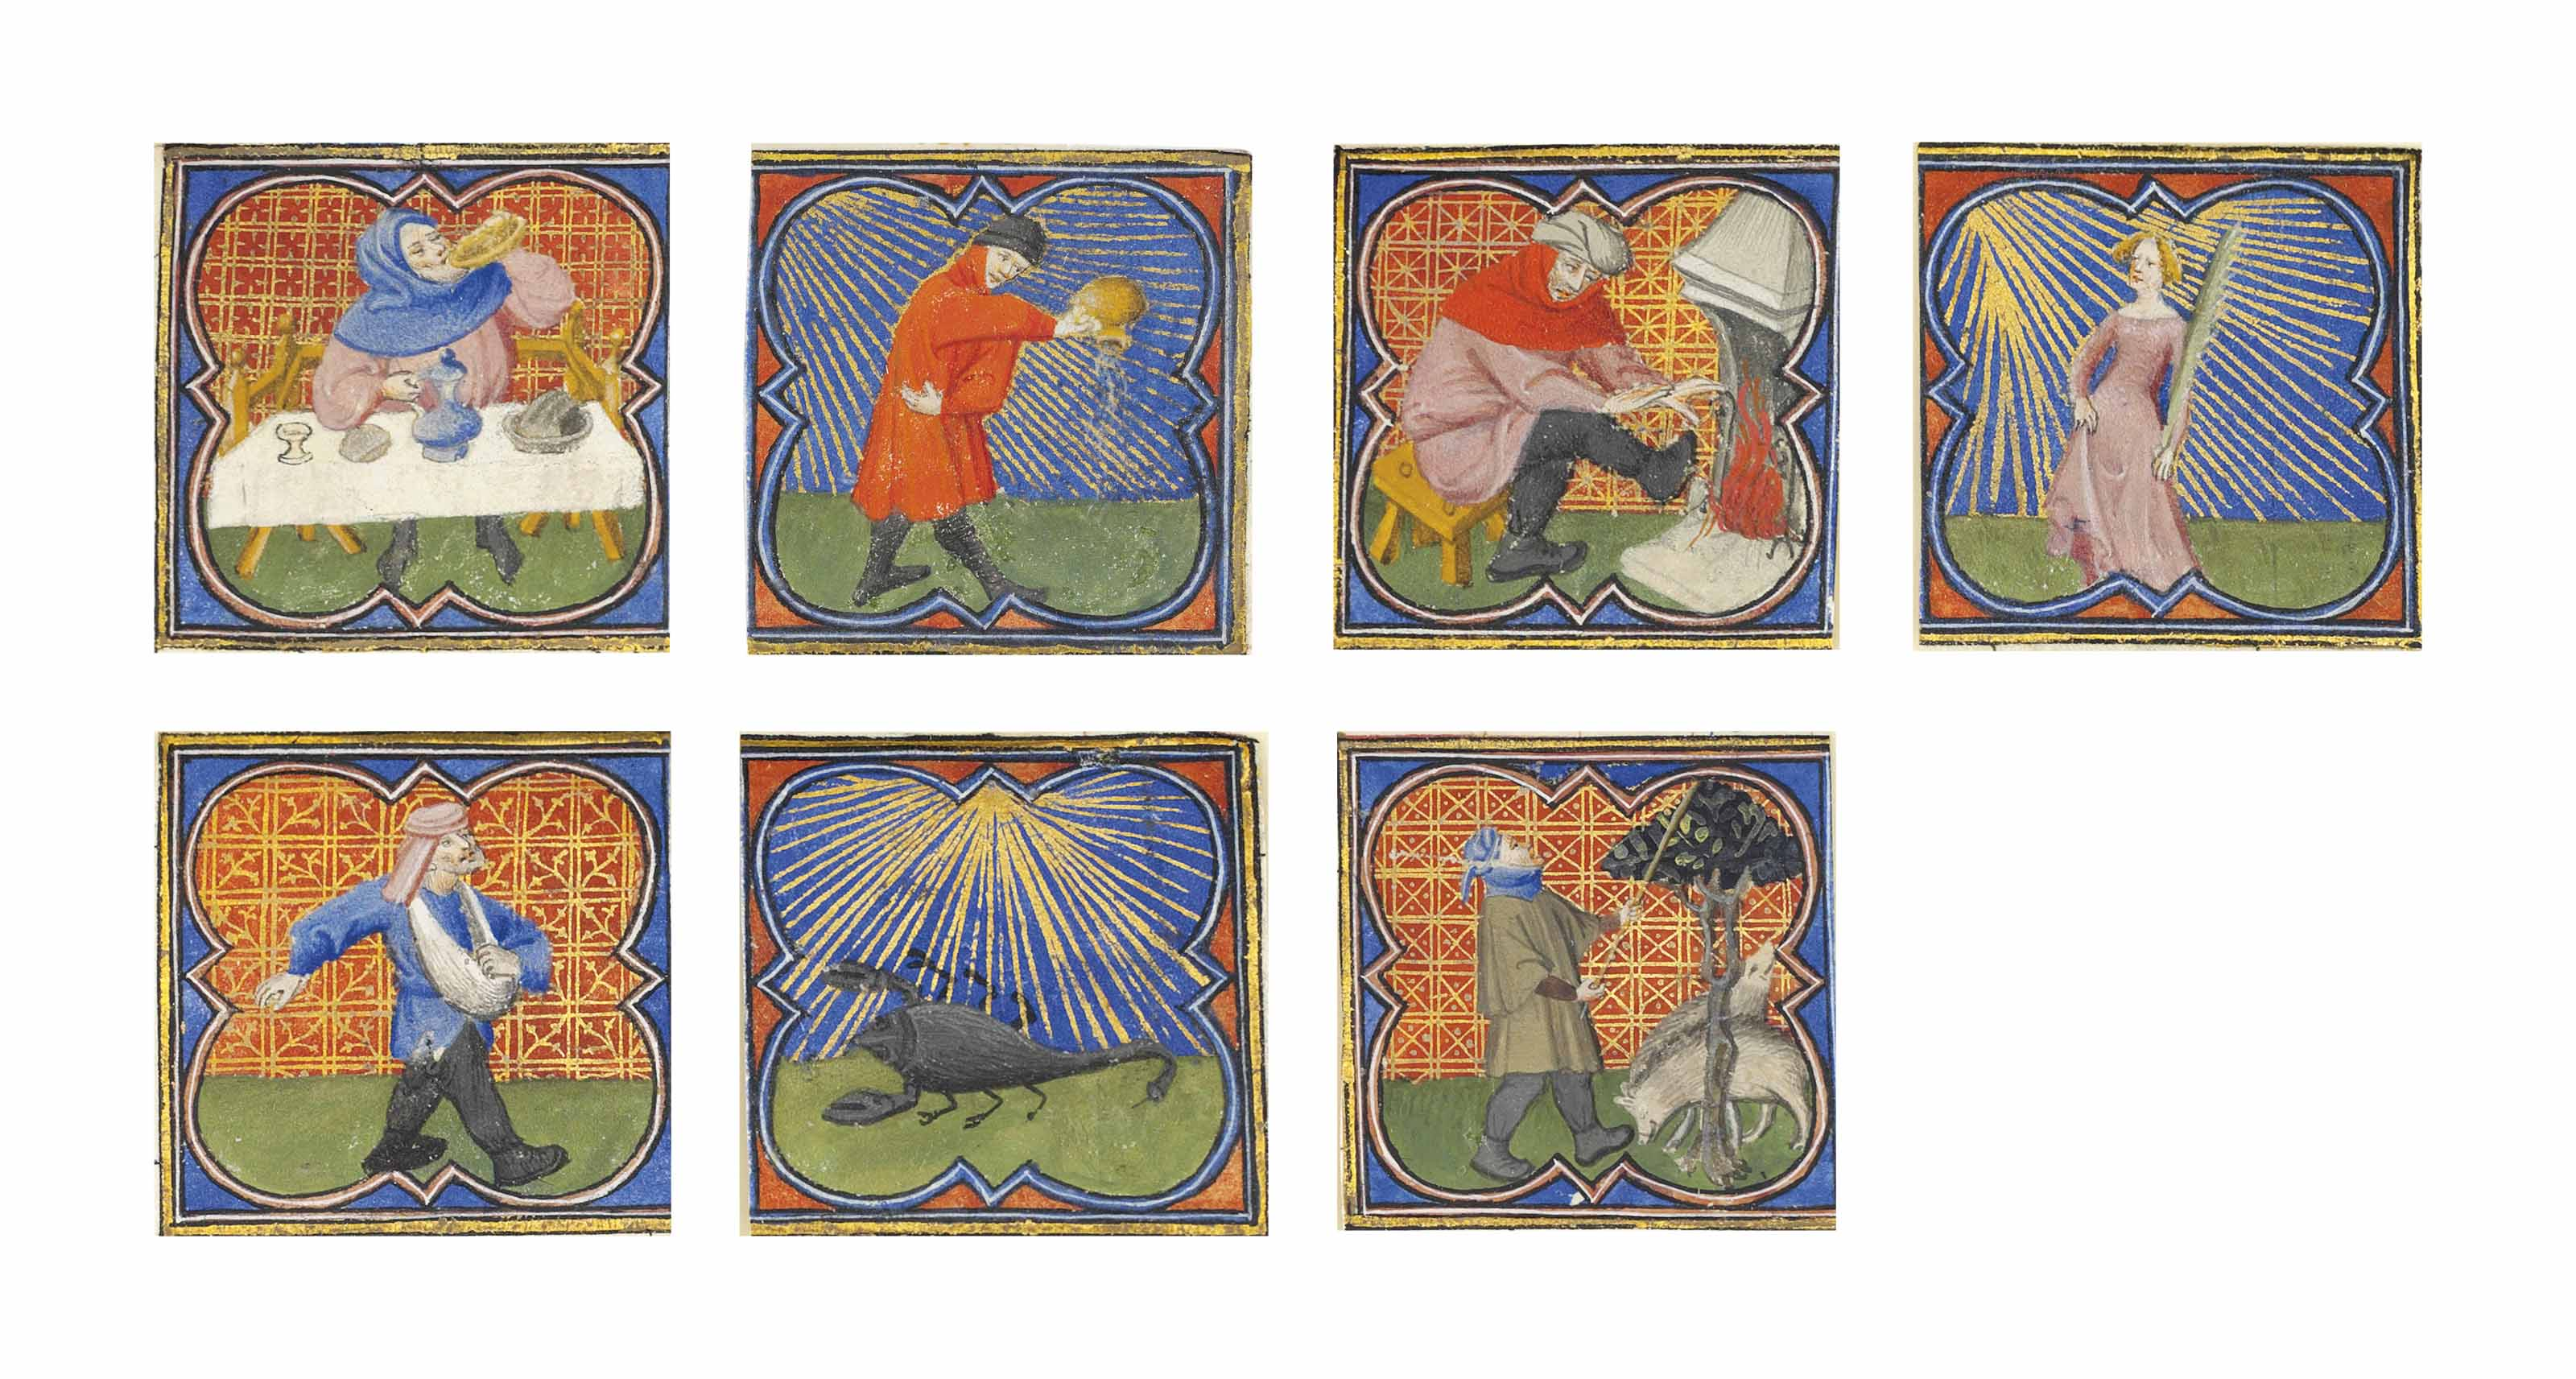 Audio: A Collection of Medieval Manuscripts